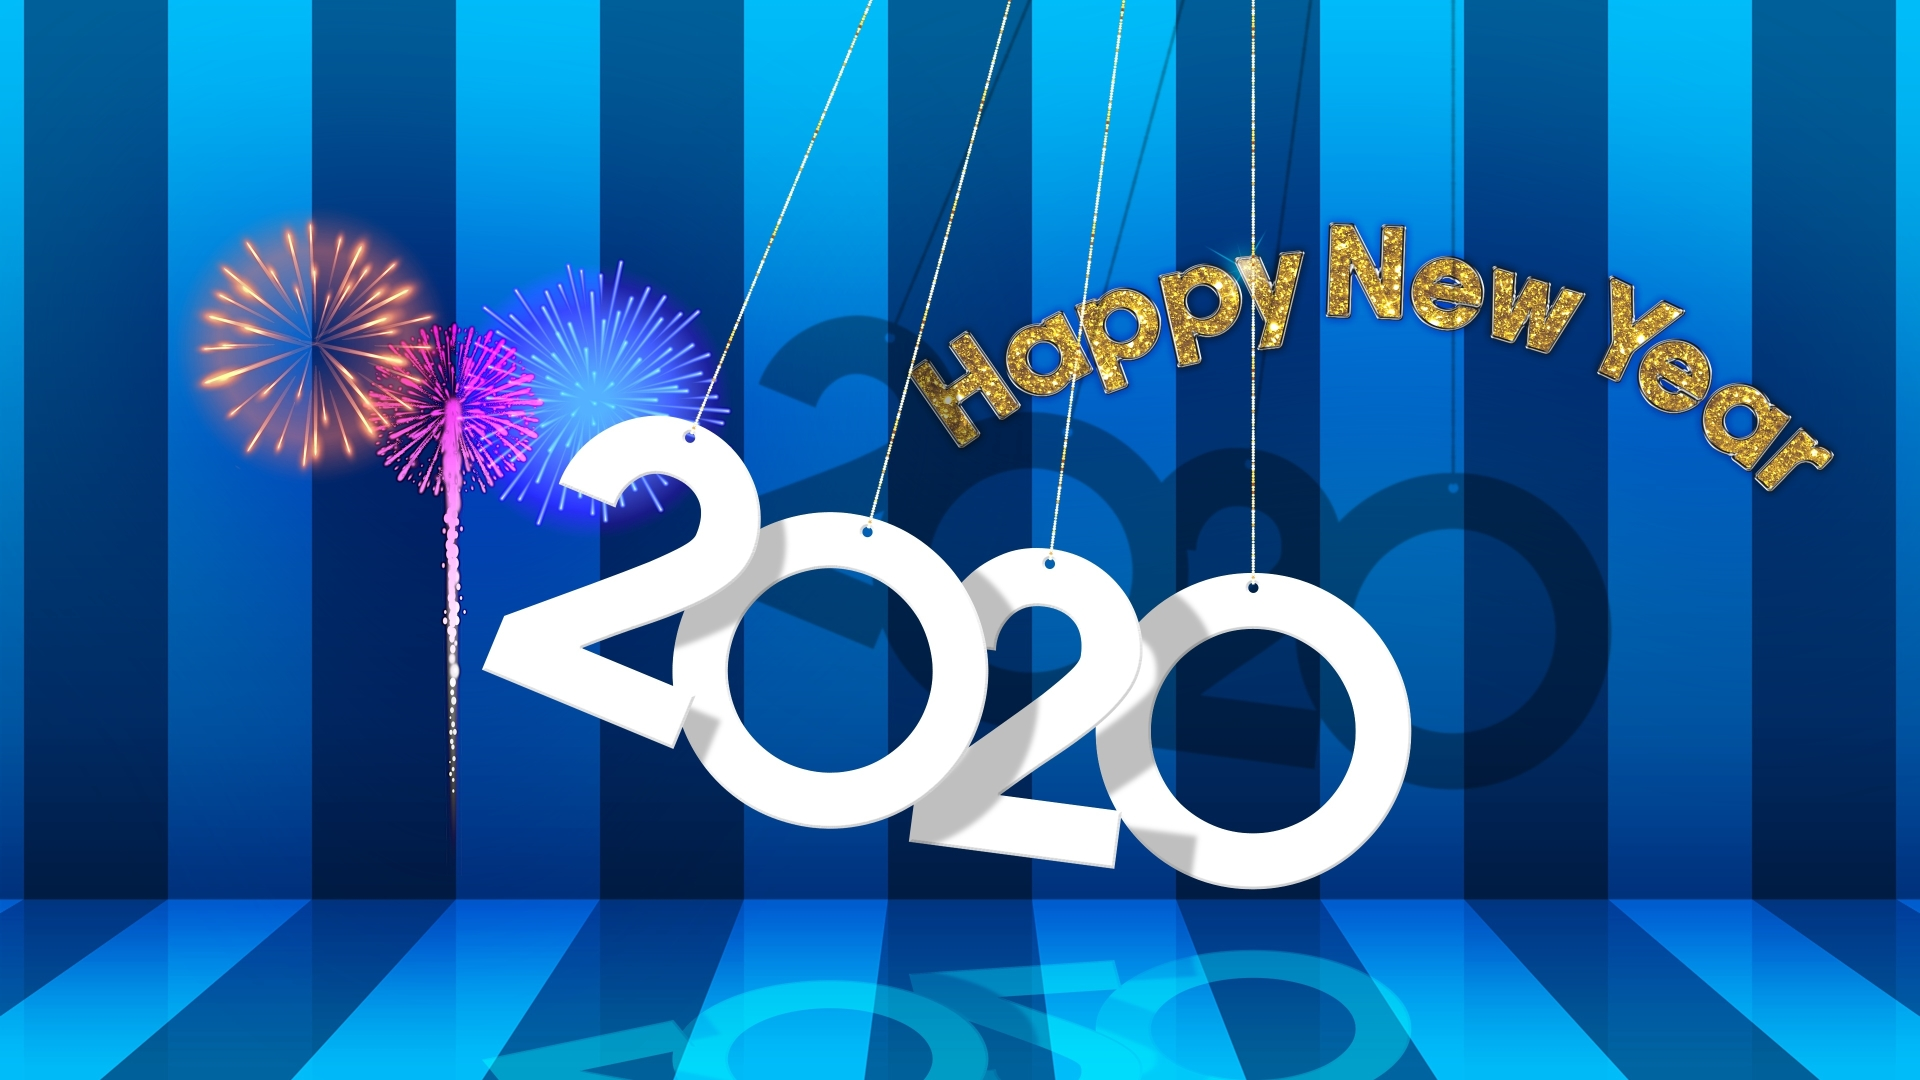 1920x1080 New Year 2020 1080P Laptop Full HD Wallpaper HD Other 1920x1080